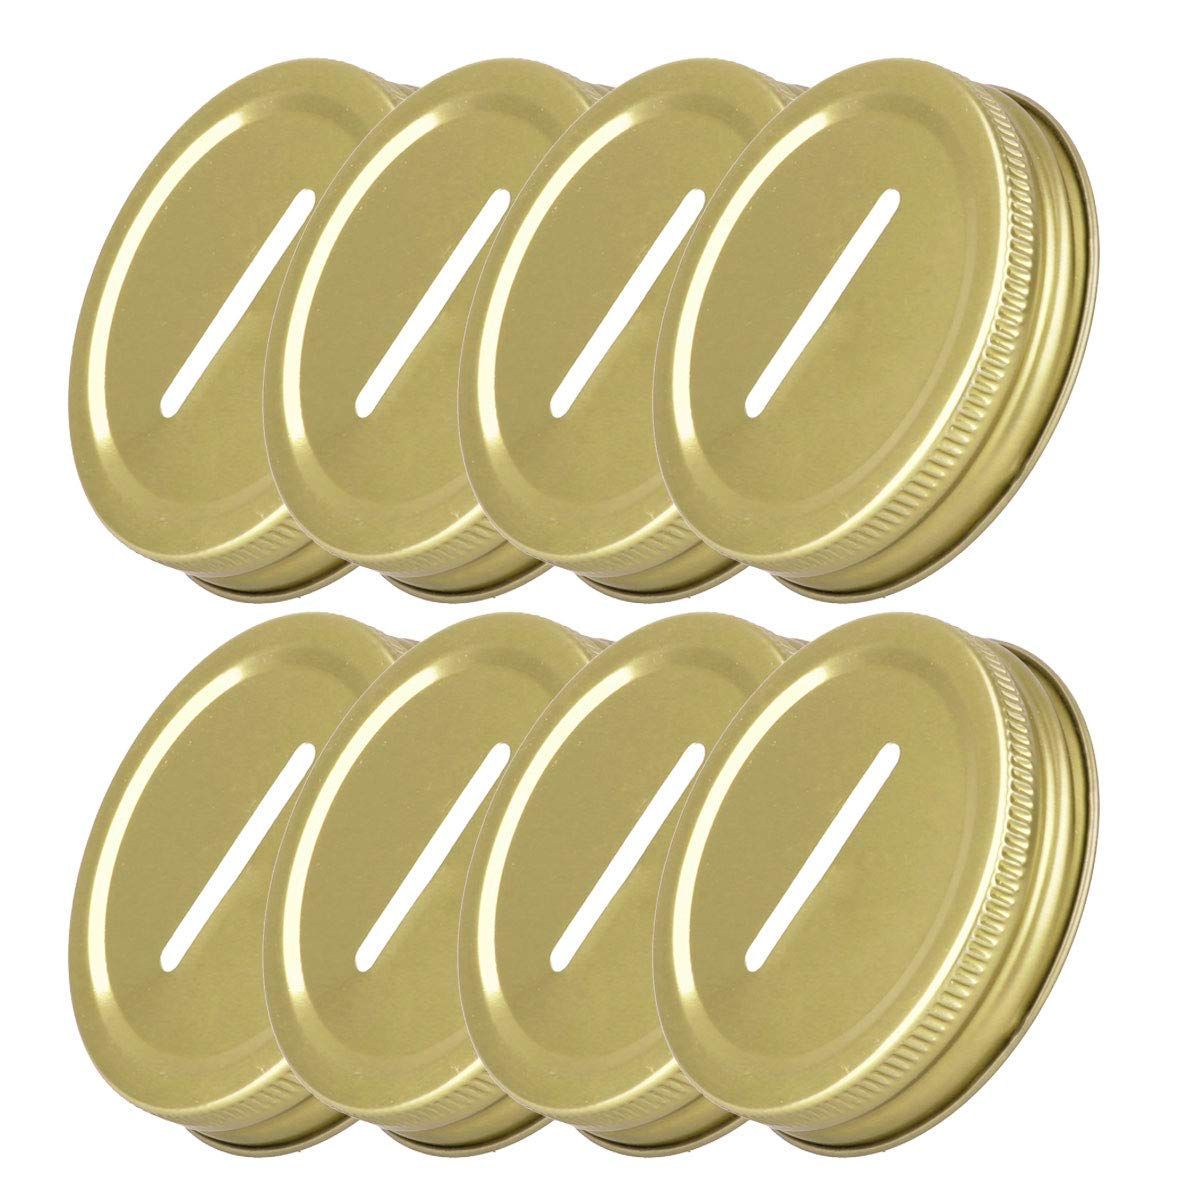 iEFiEL 8Pcs Polished Rust Resistant Coin Slot Bill Inserts Lid for 70mm Inner Diameter Mason Canning Jars Gold One Size